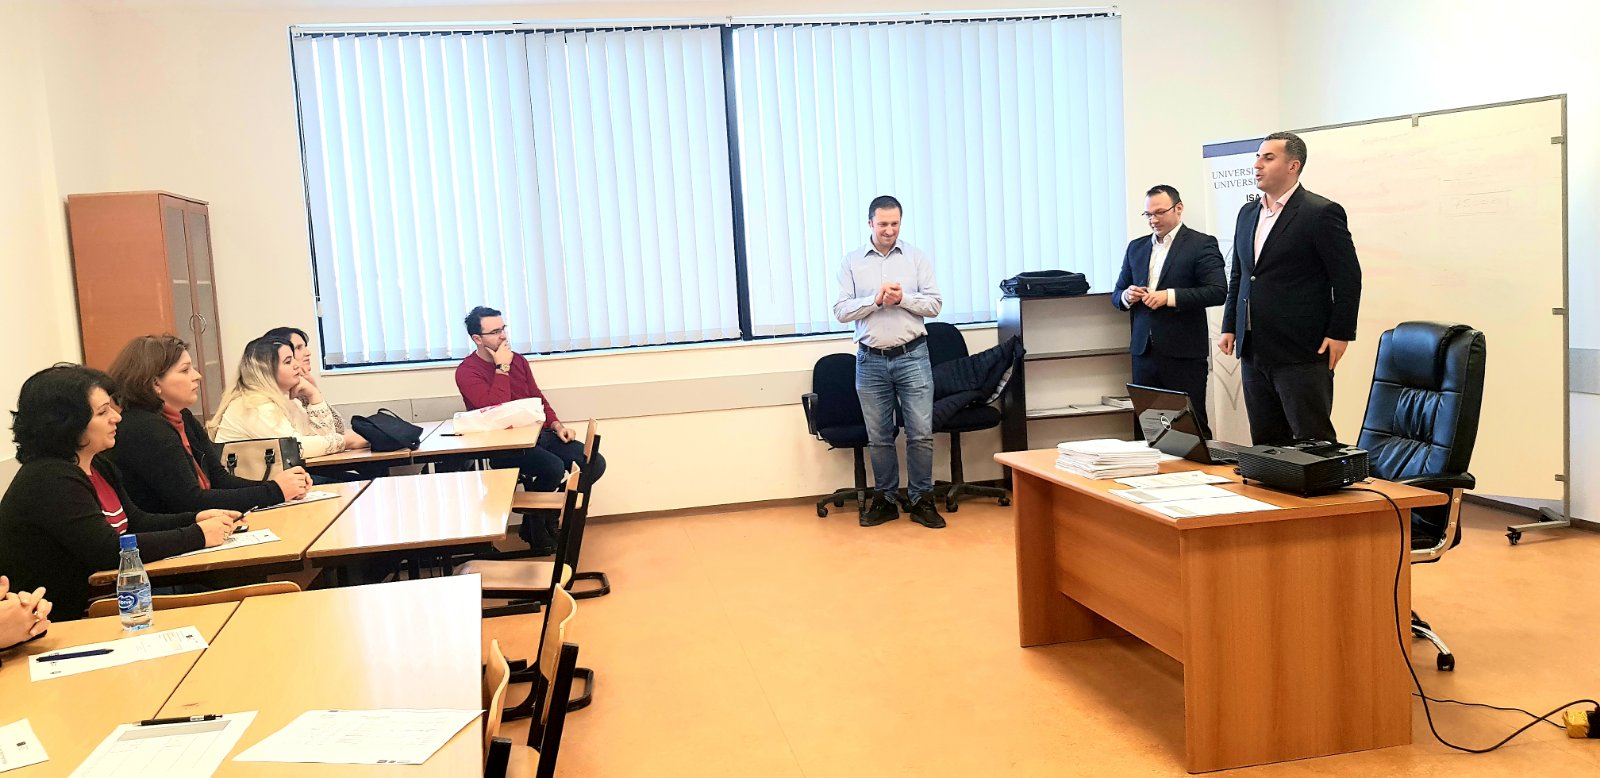 The second cycle of training from the Center for Innovation and Entrepreneurship has started